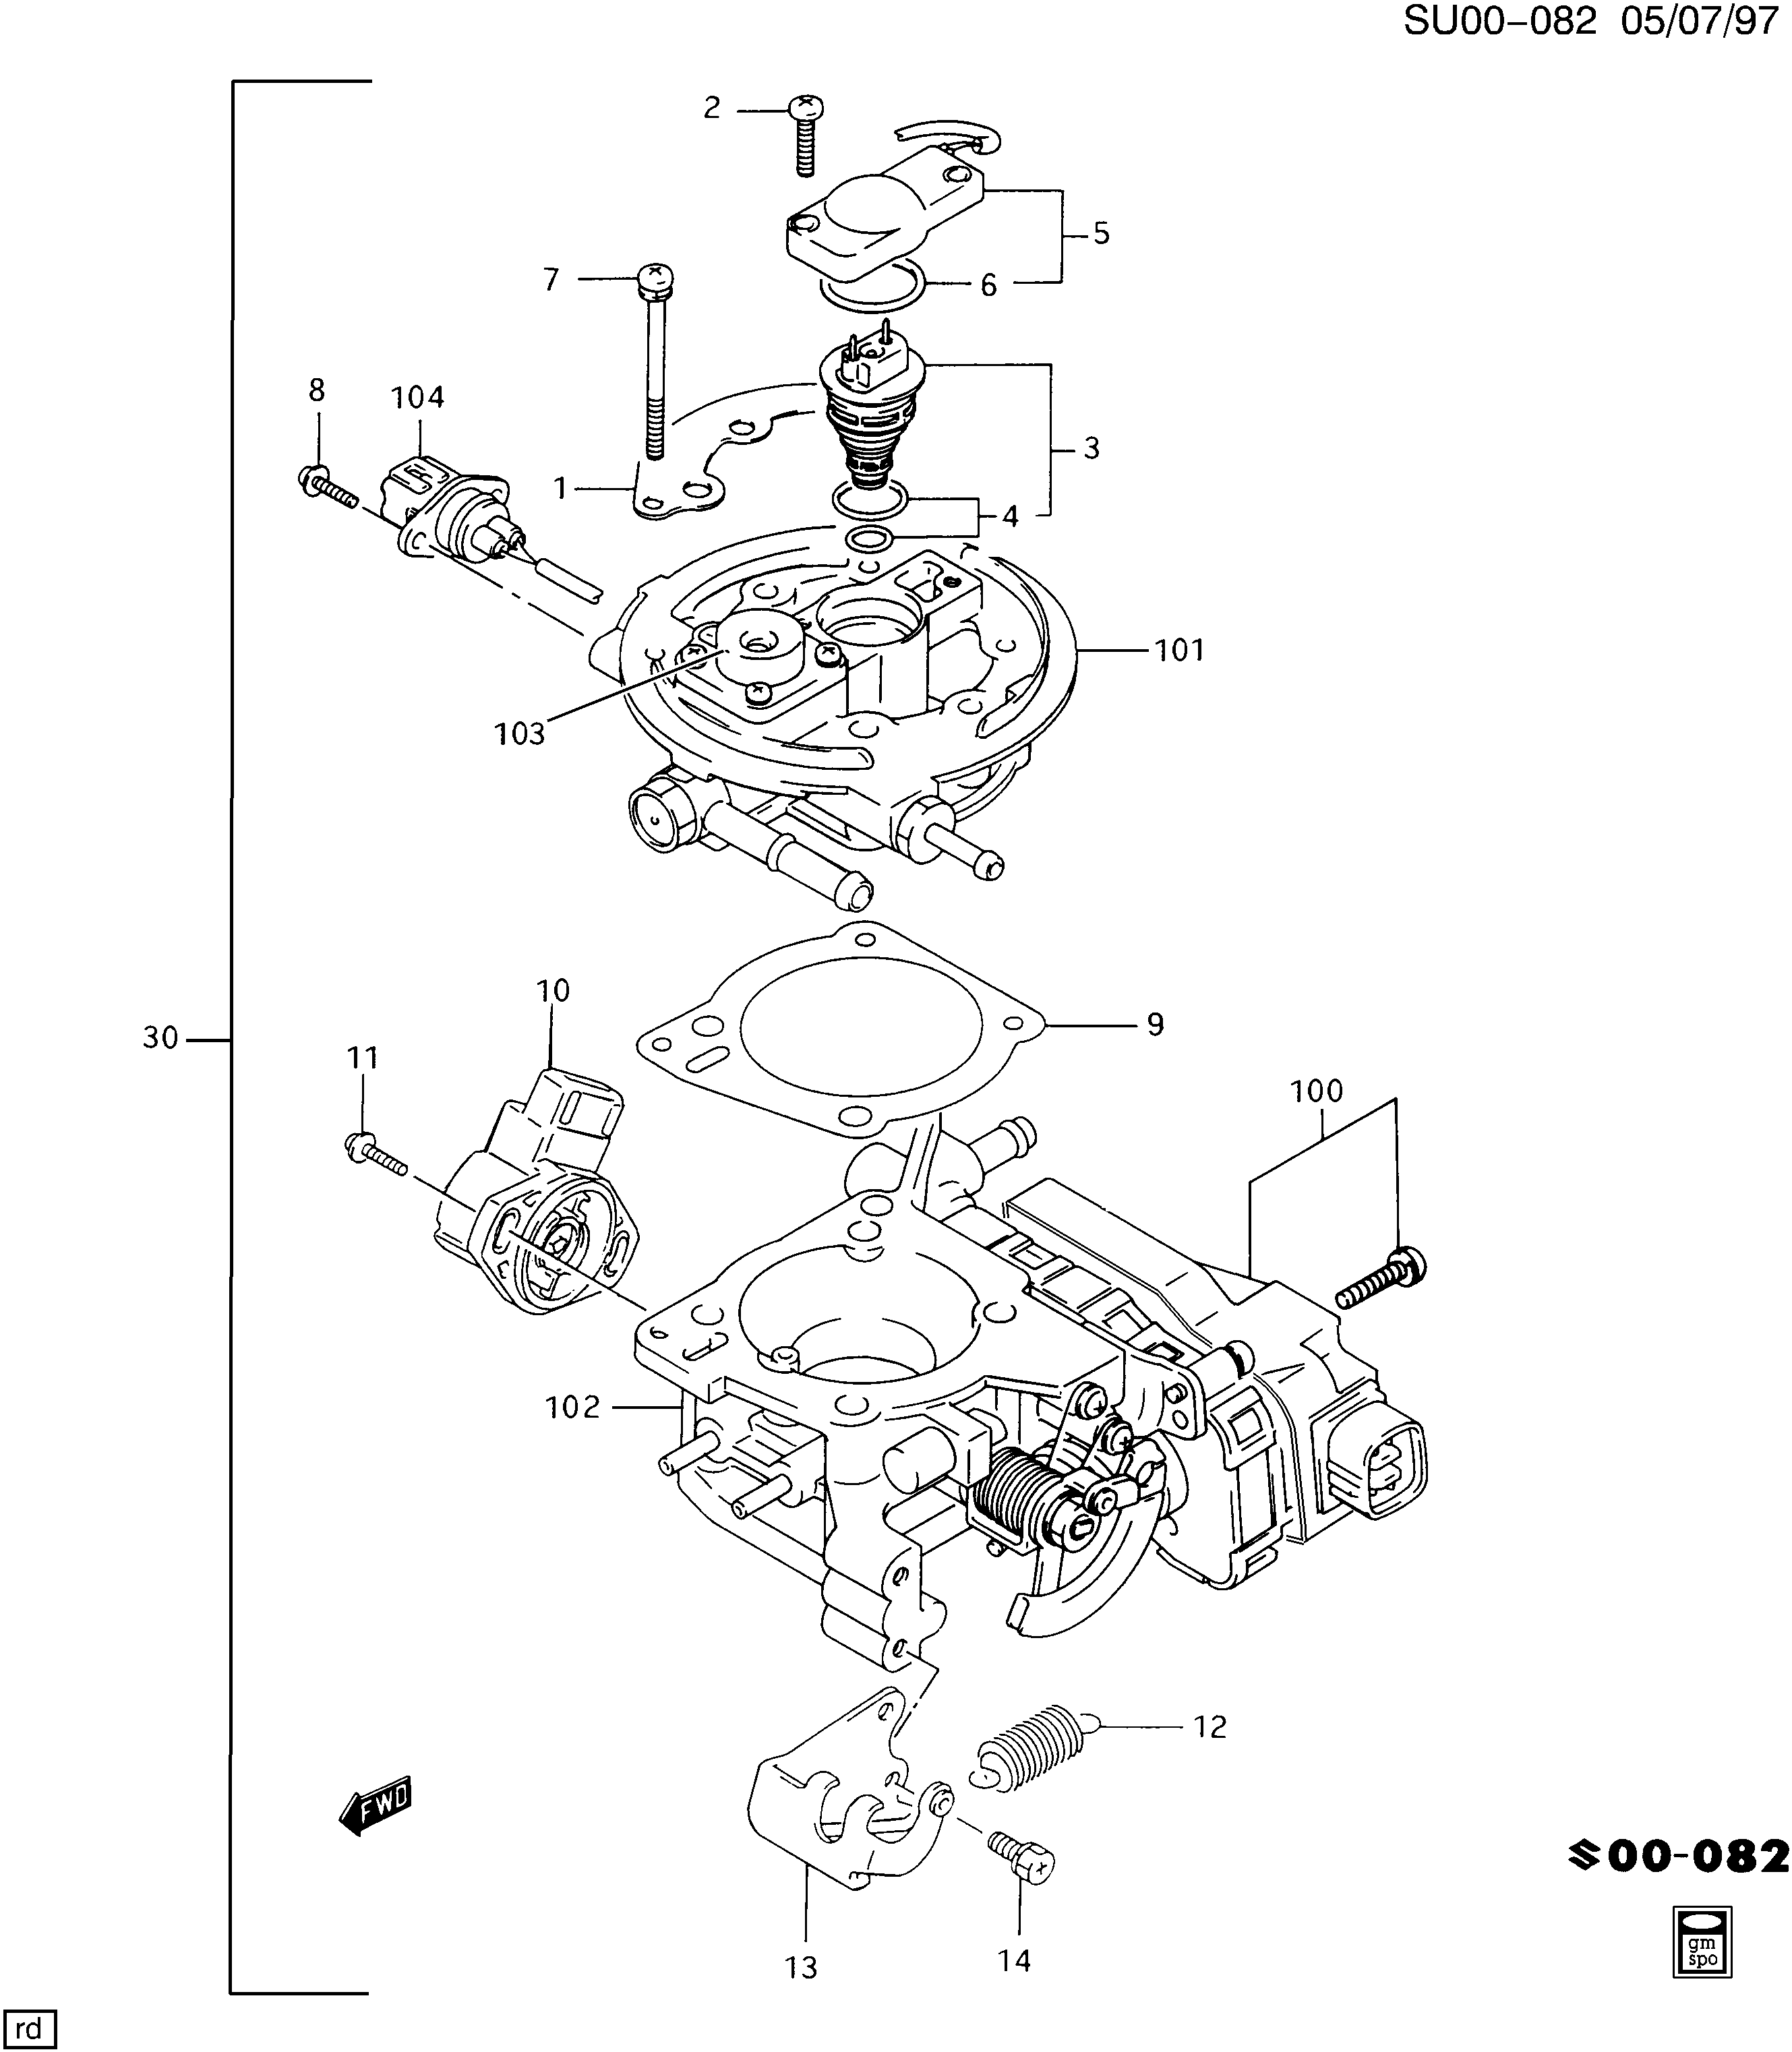 Geo Metro Throttle Body Diagram Electrical Wiring Diagrams Harness Connector Meanings 1998 2000 M Lp2 1 0 6 Chevrolet